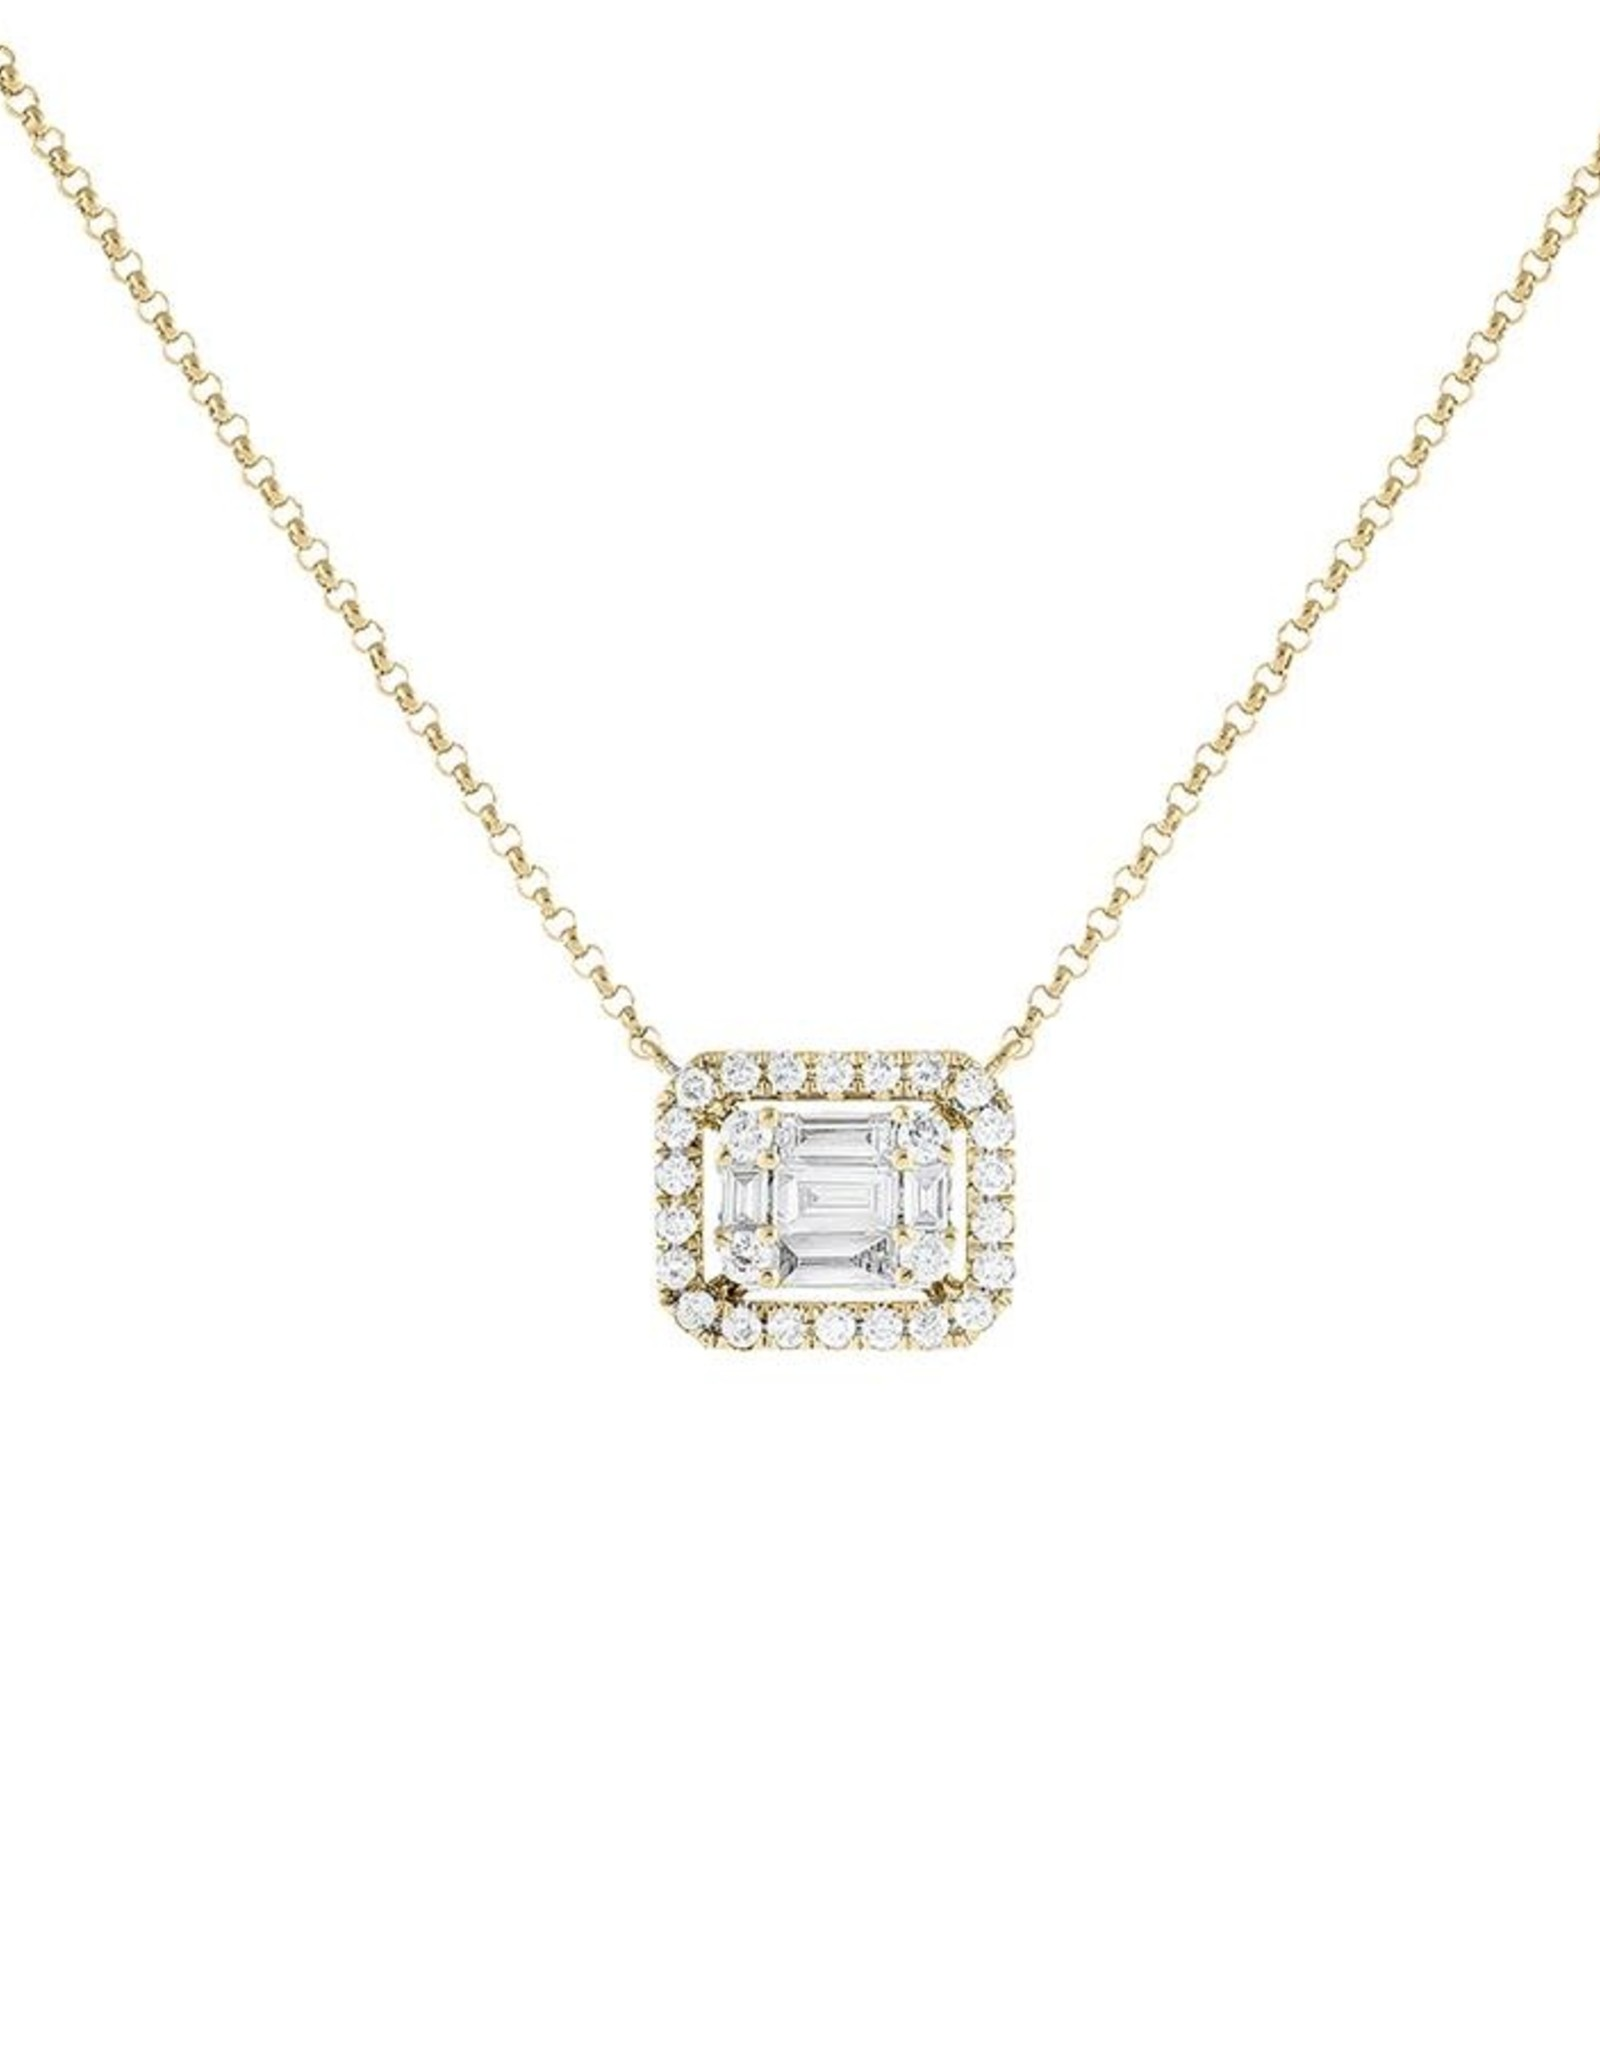 Adinas Diamond Illusion Sideways Baguette Pendant Necklace 14K